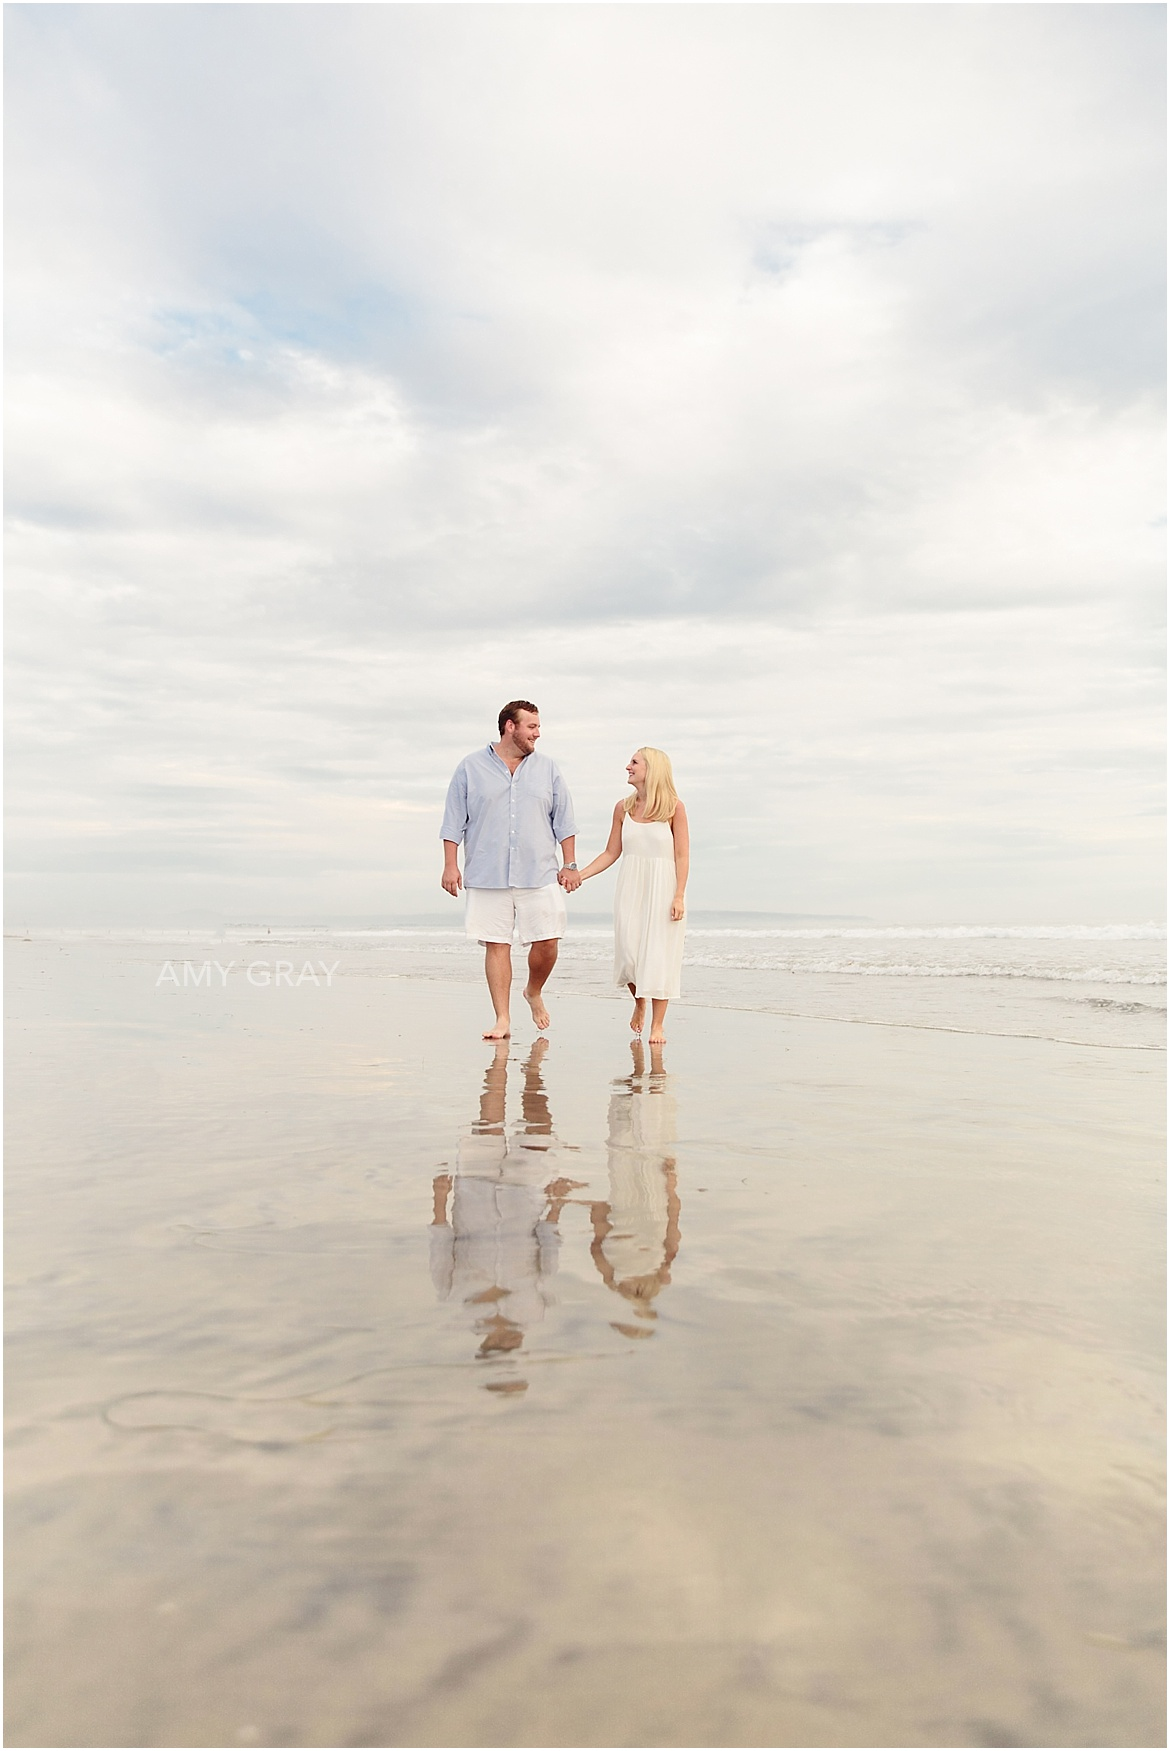 San Diego Photography | Anniversary on the Beach